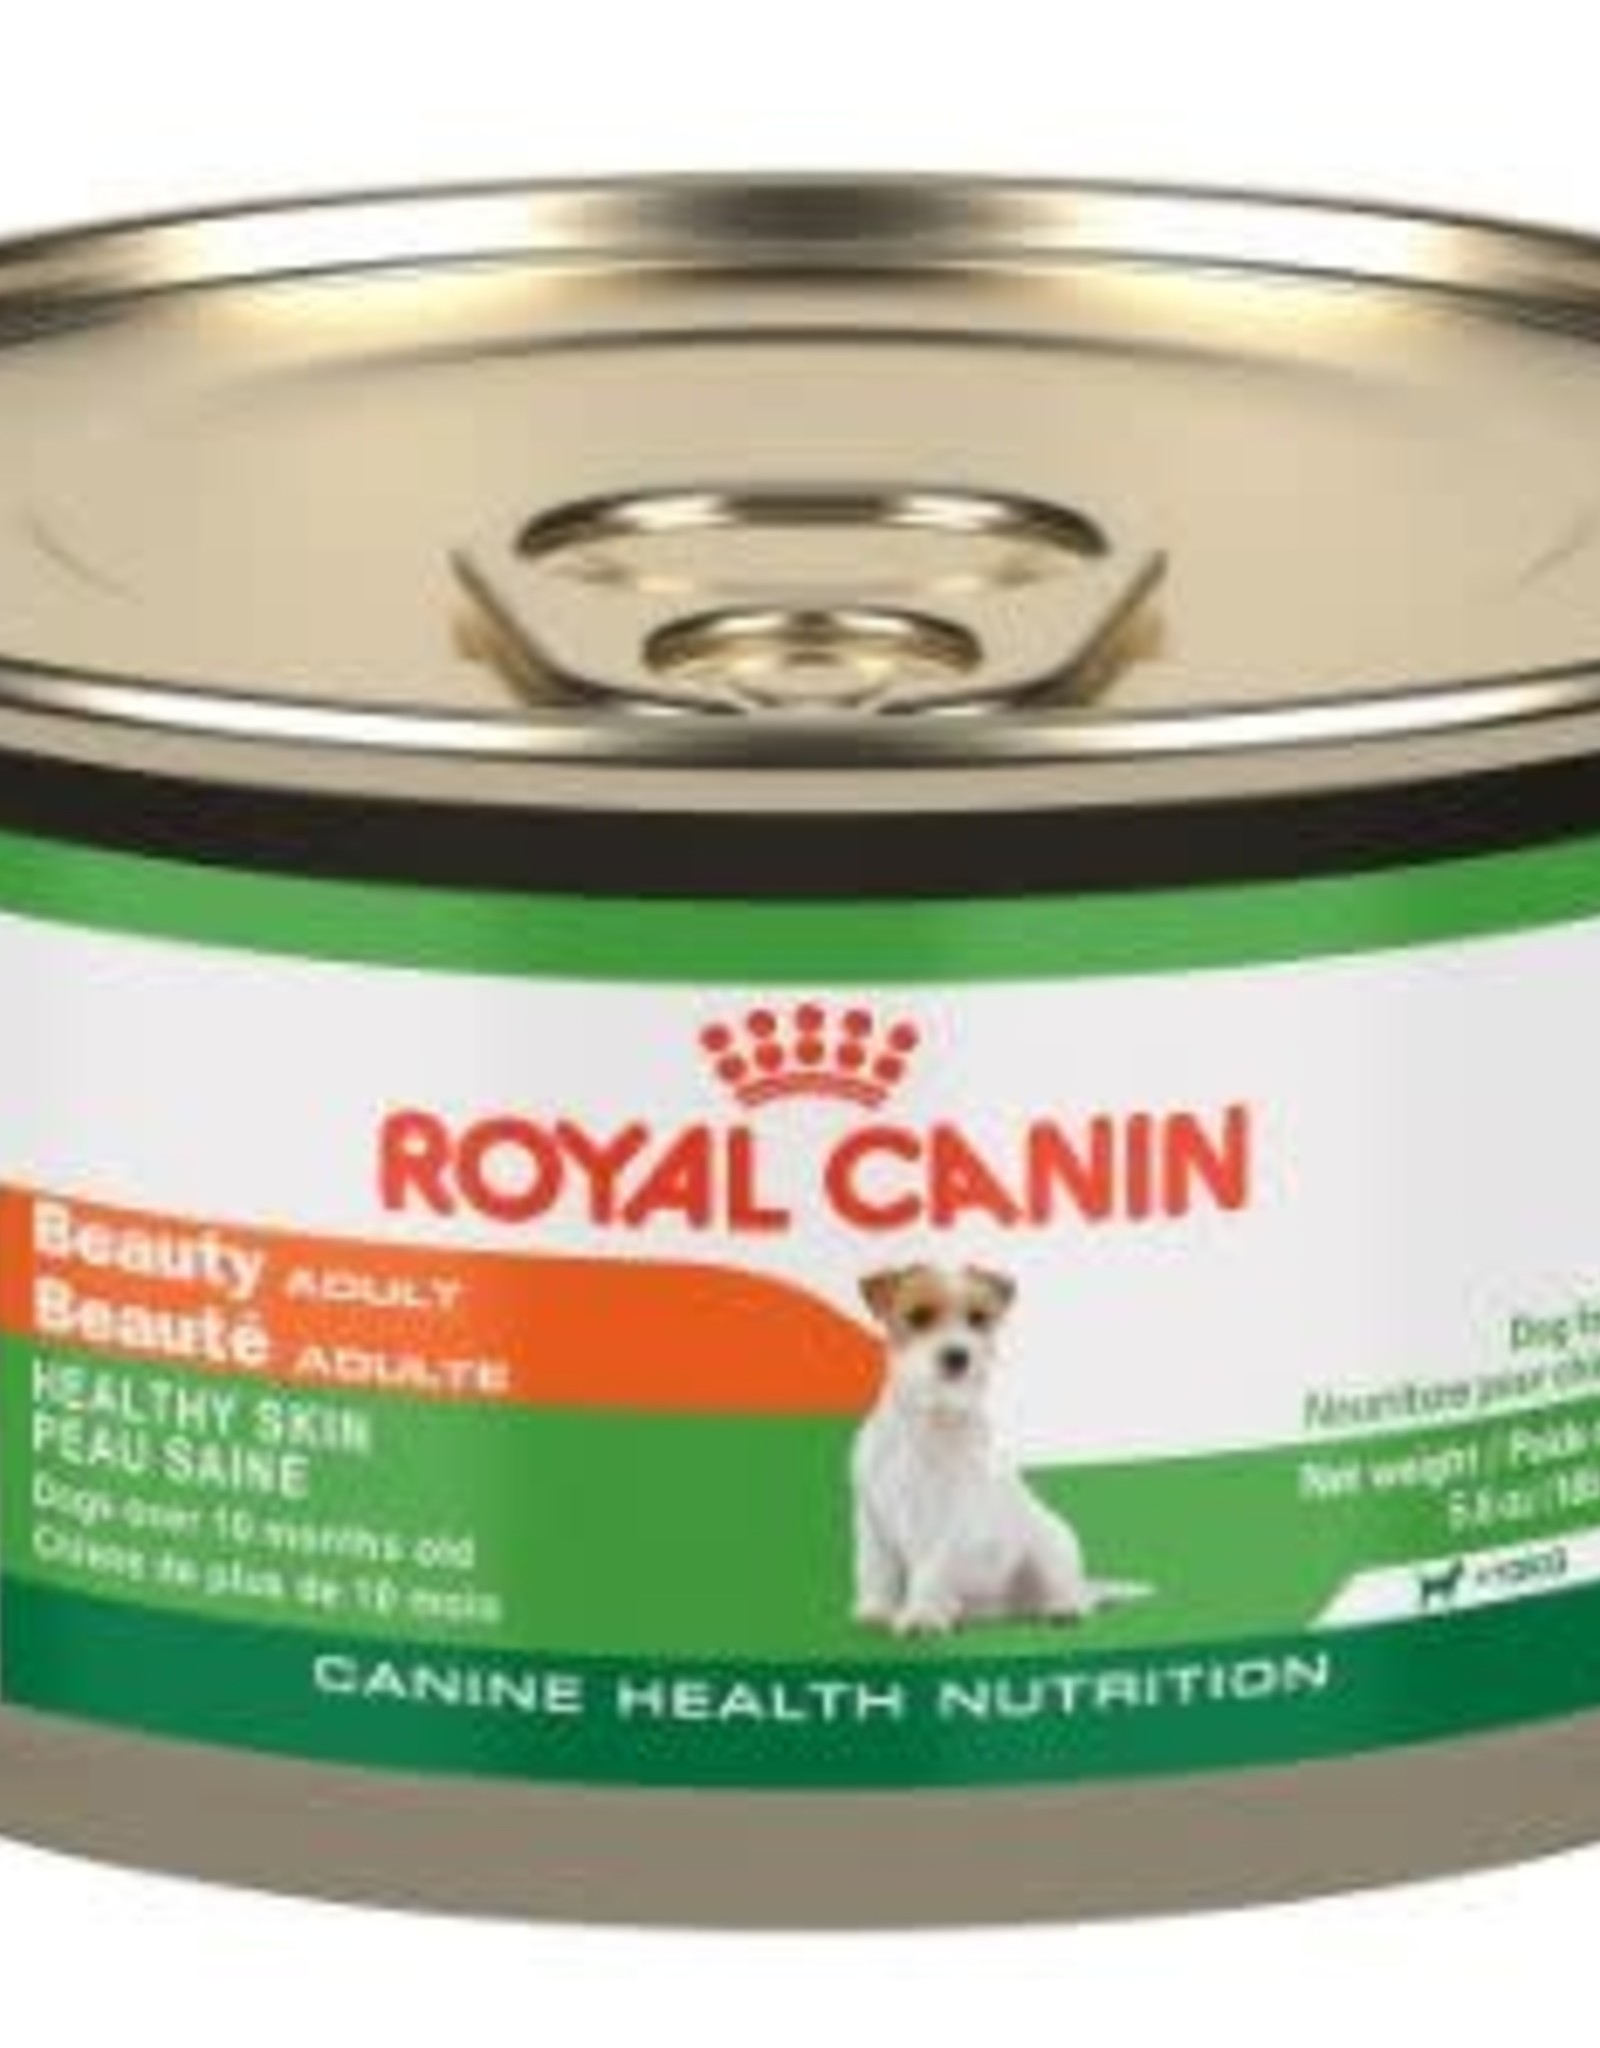 Royal Canin royal canin beauty dog cans 165gm